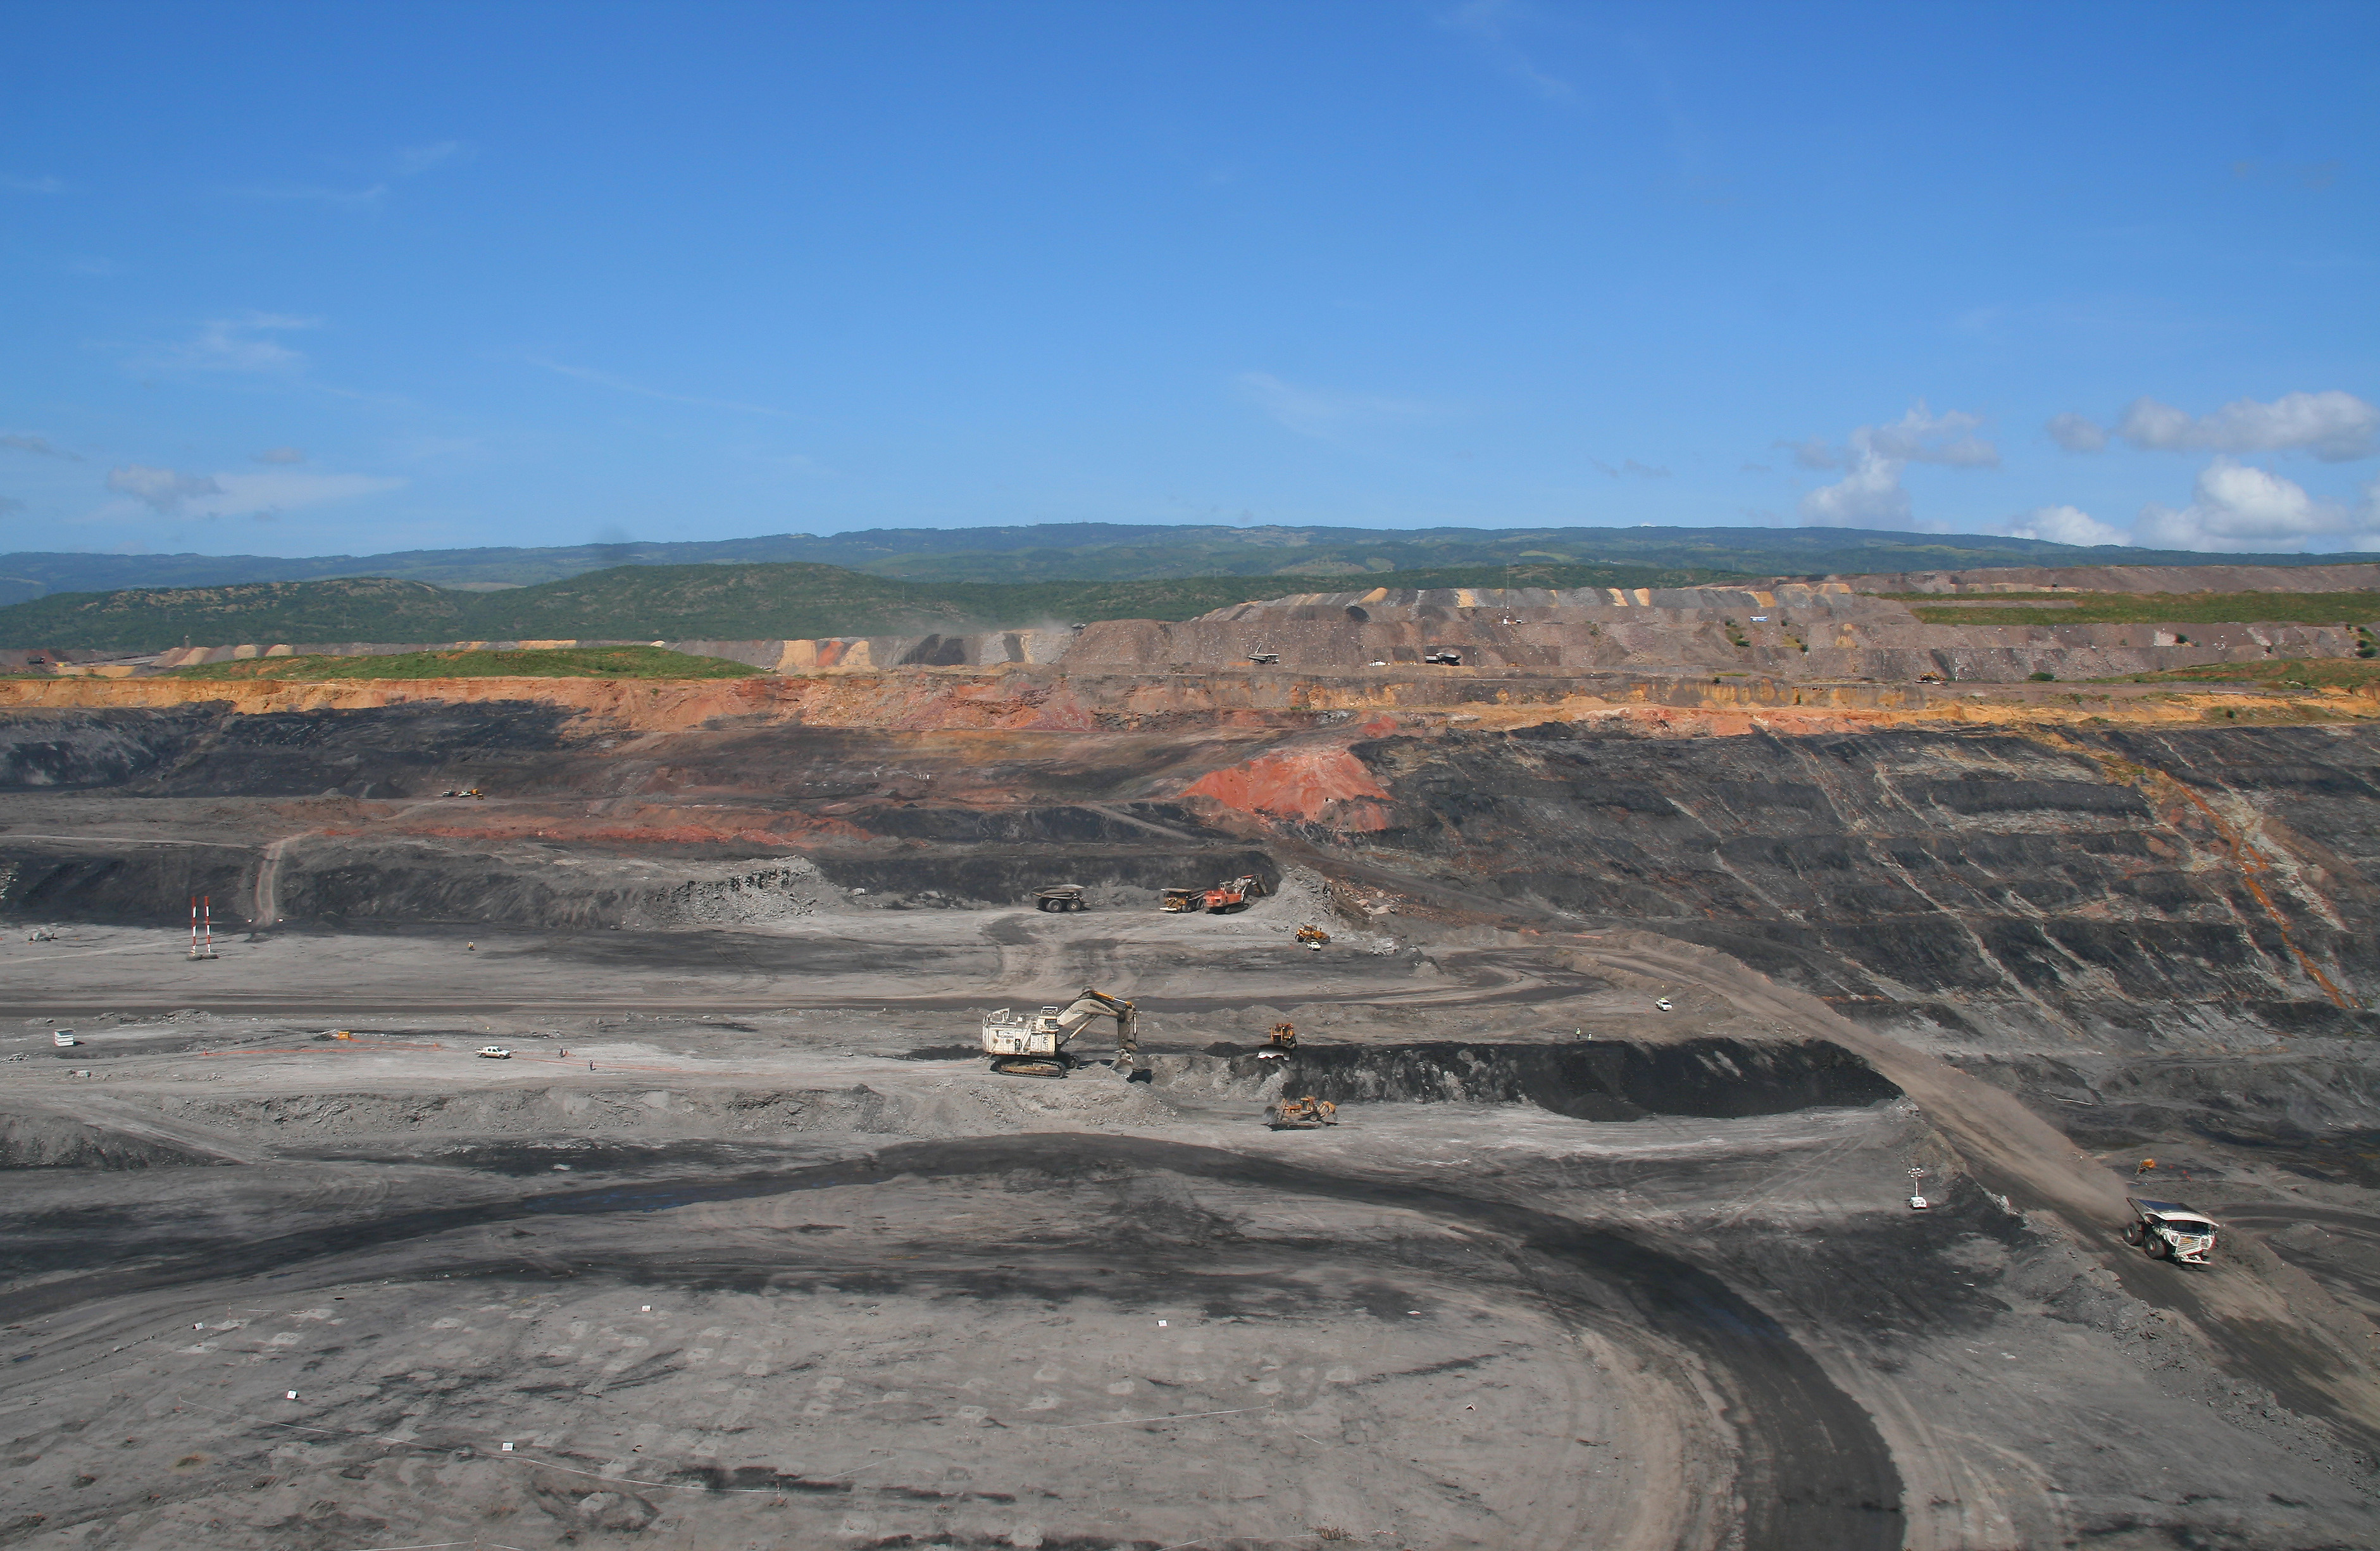 El Cerrejón, one of the world's largest open pit coal mines, Colombia ©Tanenhaus